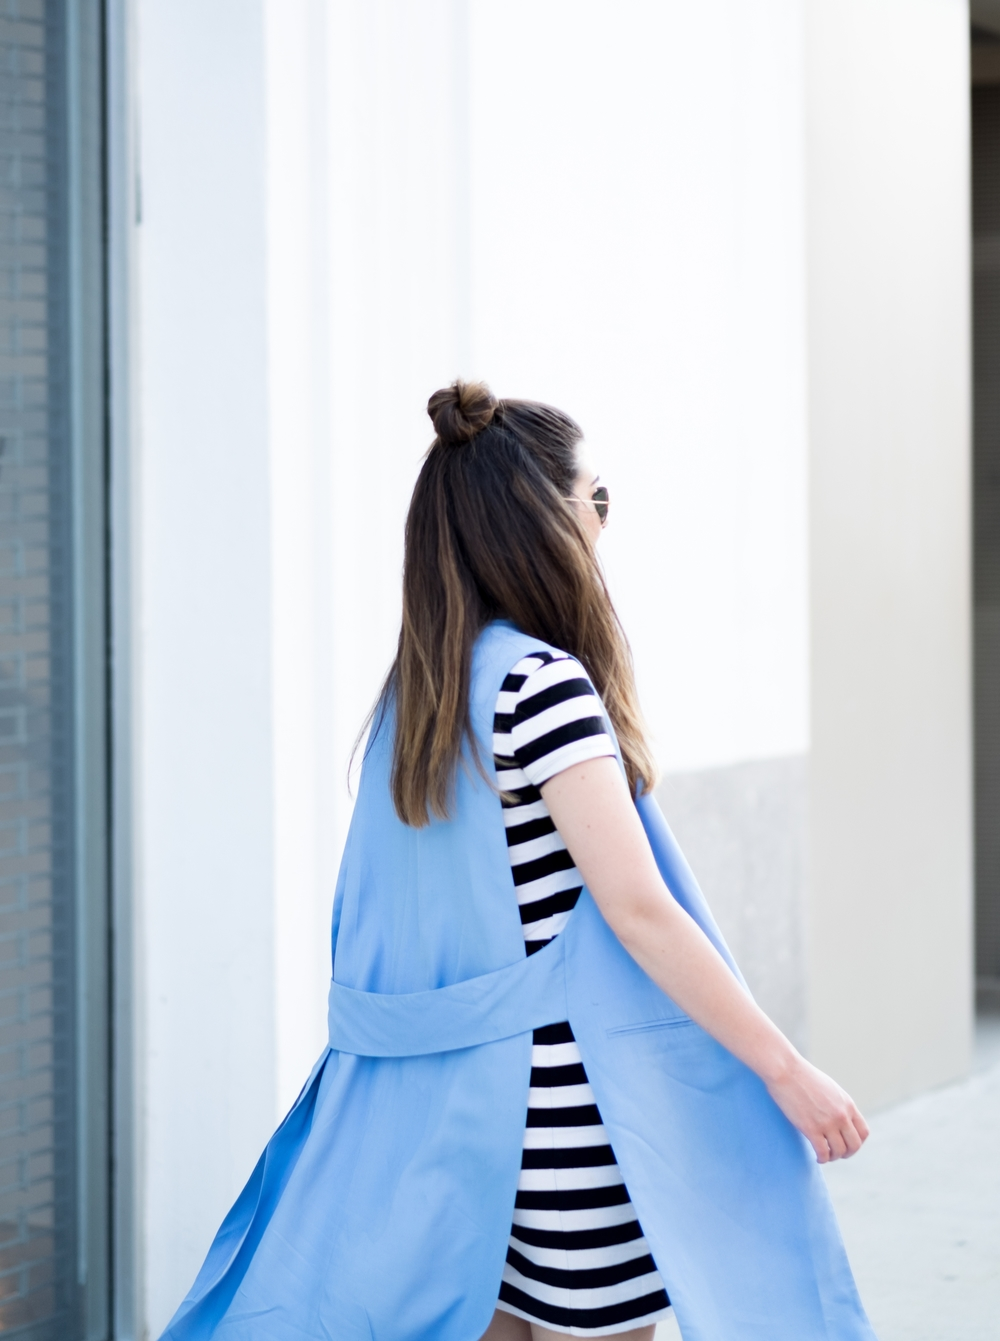 Striped Dress Long Light Blue Vest Louboutins & Love Fashion Blog Esther Santer NYC Street Style Blogger Outfit OOTD Topknot Hair Inspo Girl Women Wedges Dolce Vita Bag Ivanka Trump Soho Tote Aviator Ray-Ban Sunglasses Choker Summer Trendy Photoshoot.jpg